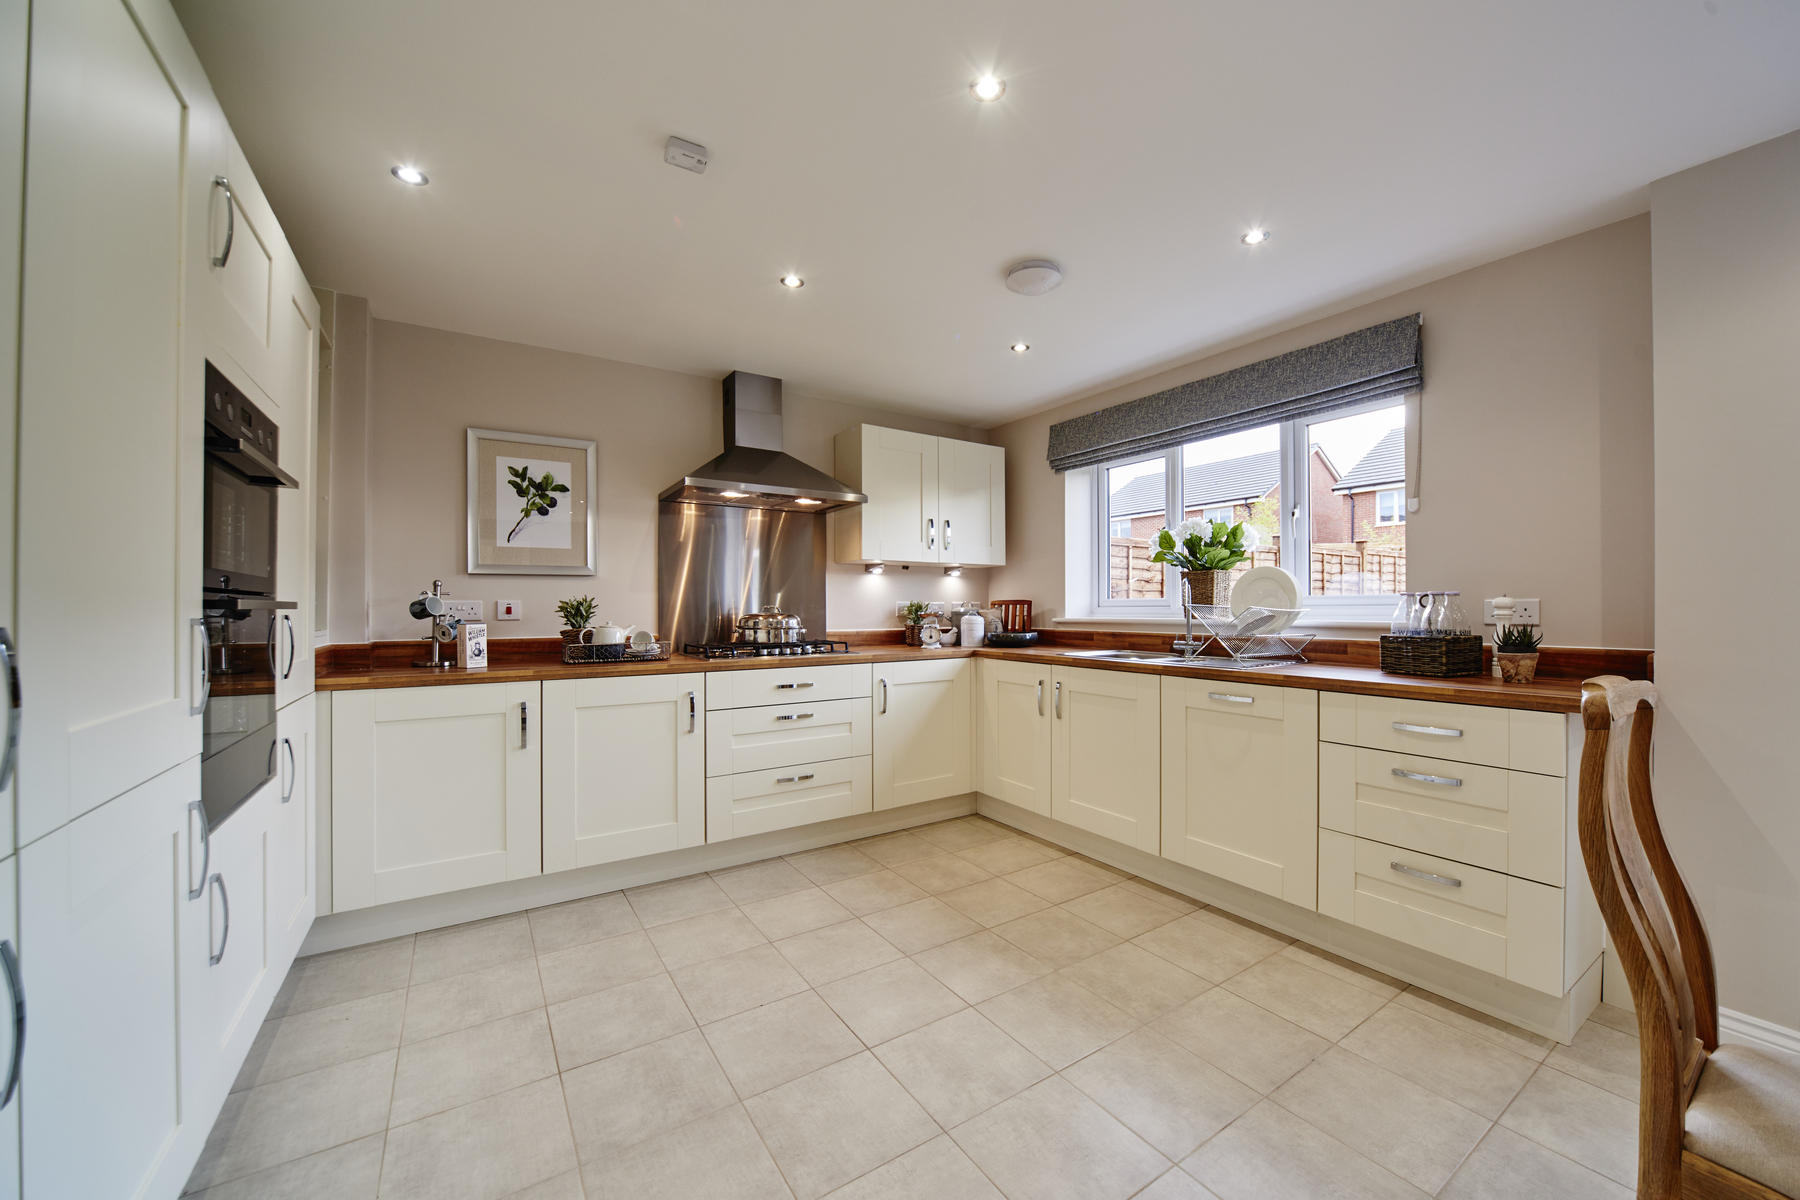 TWM_BurlingtonFields_Shifnal_Haddenham_Showhome_0003